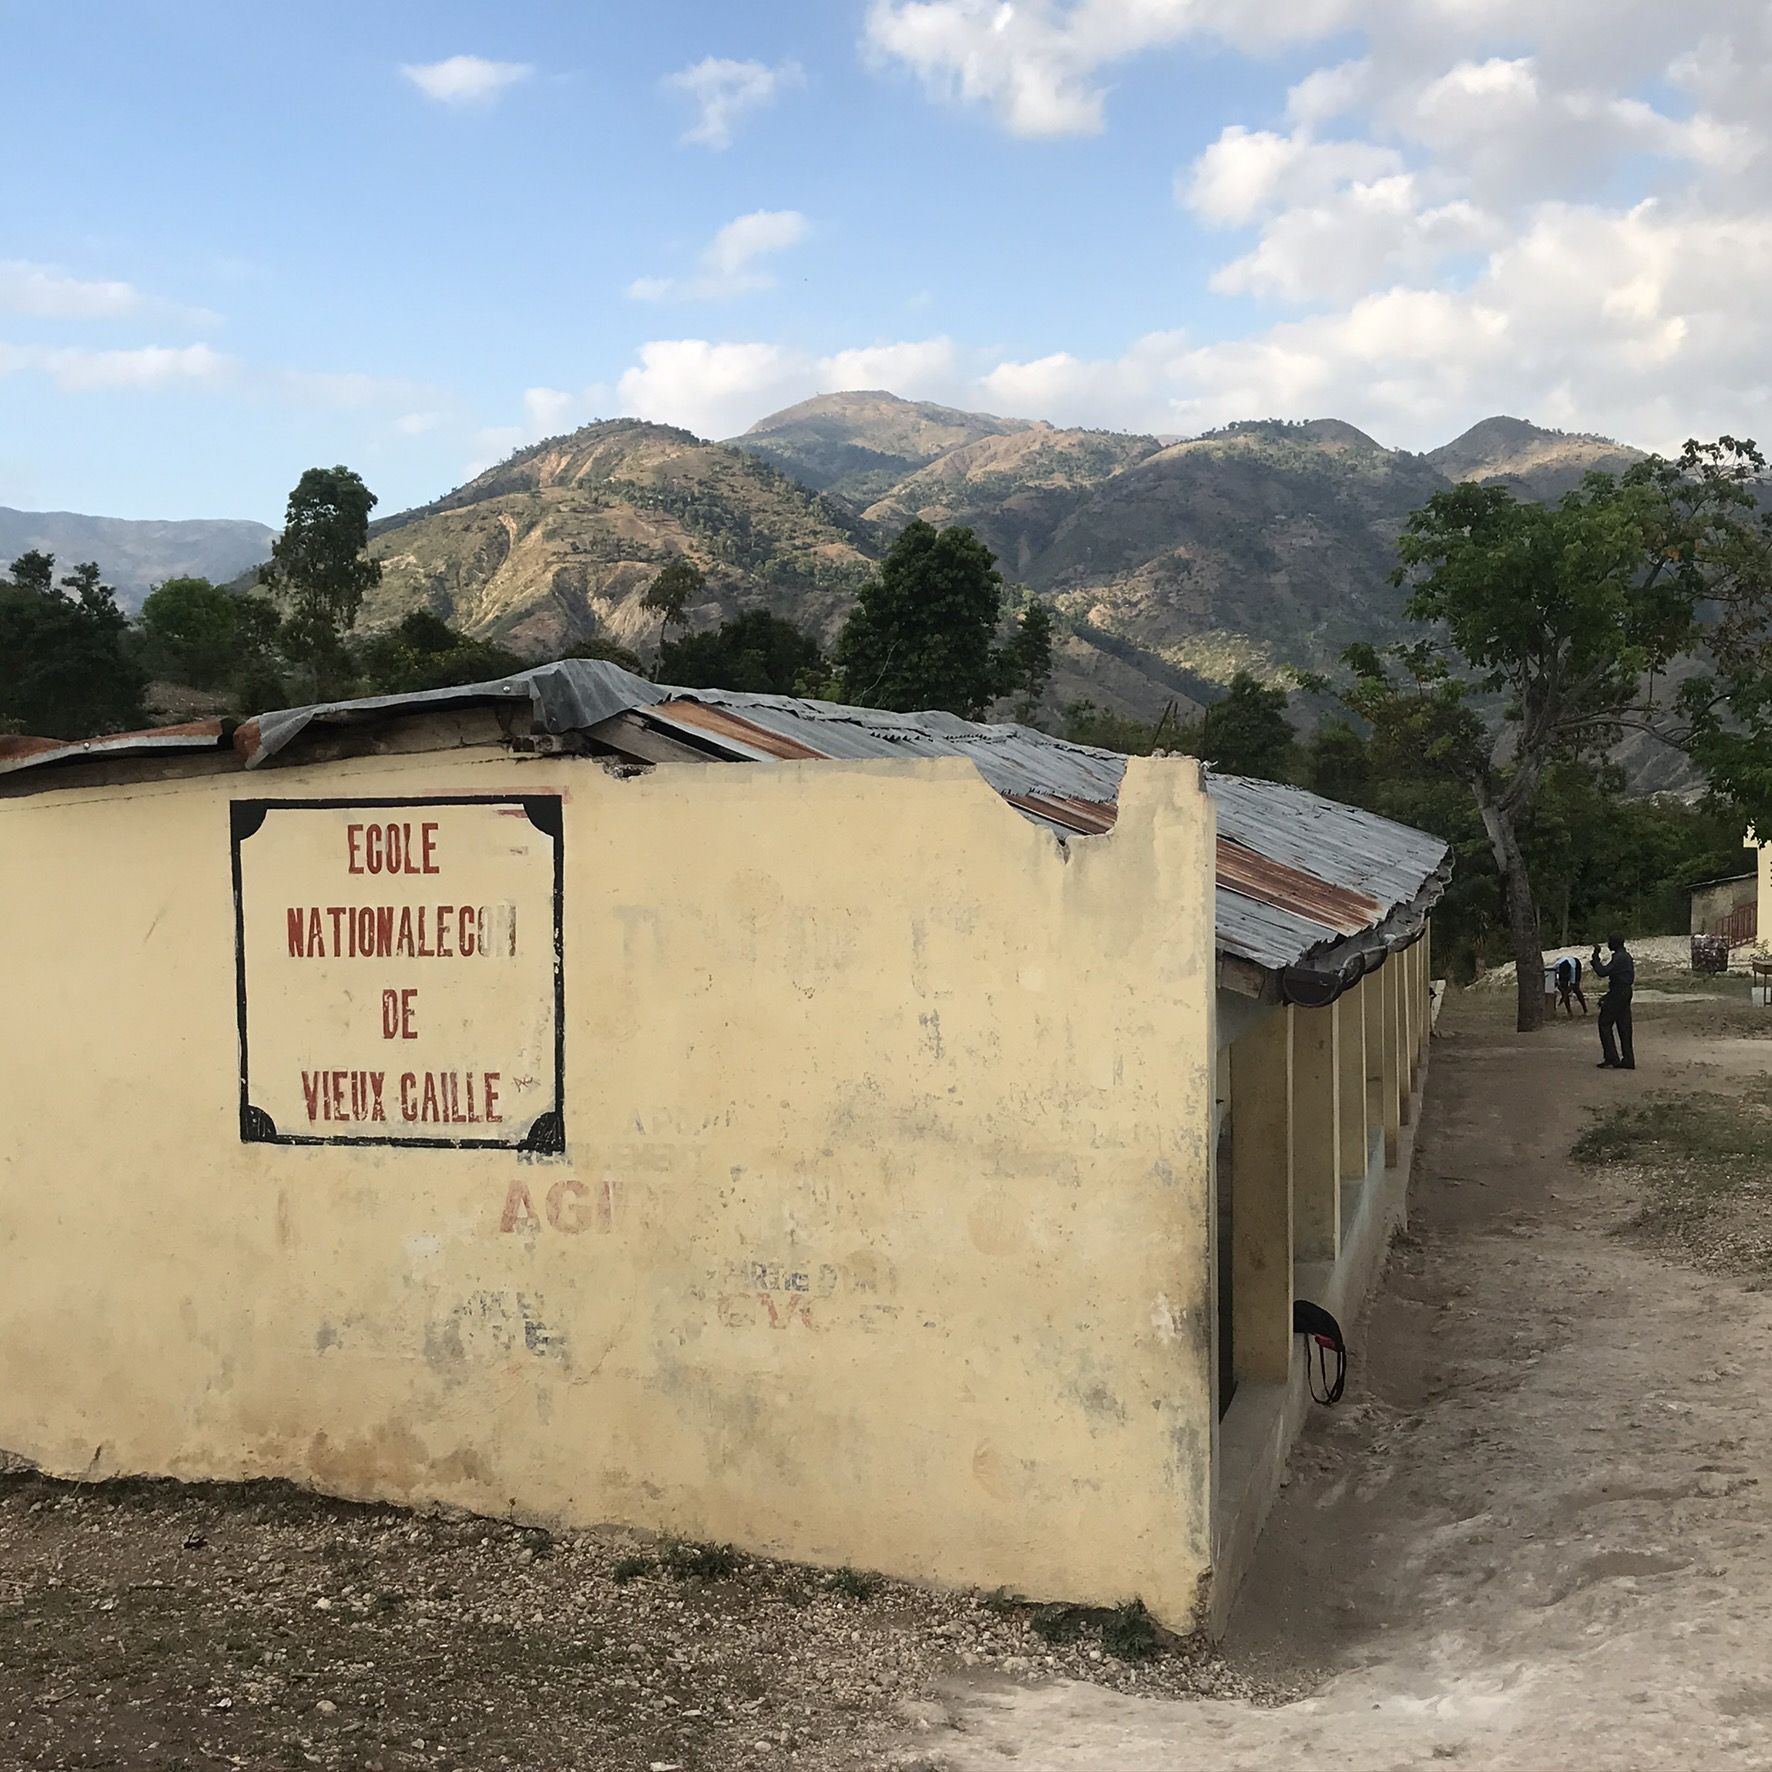 Haiti's Vieux Caille National School located in a rural area outside Grand Goave to the west of Port-au-Prince